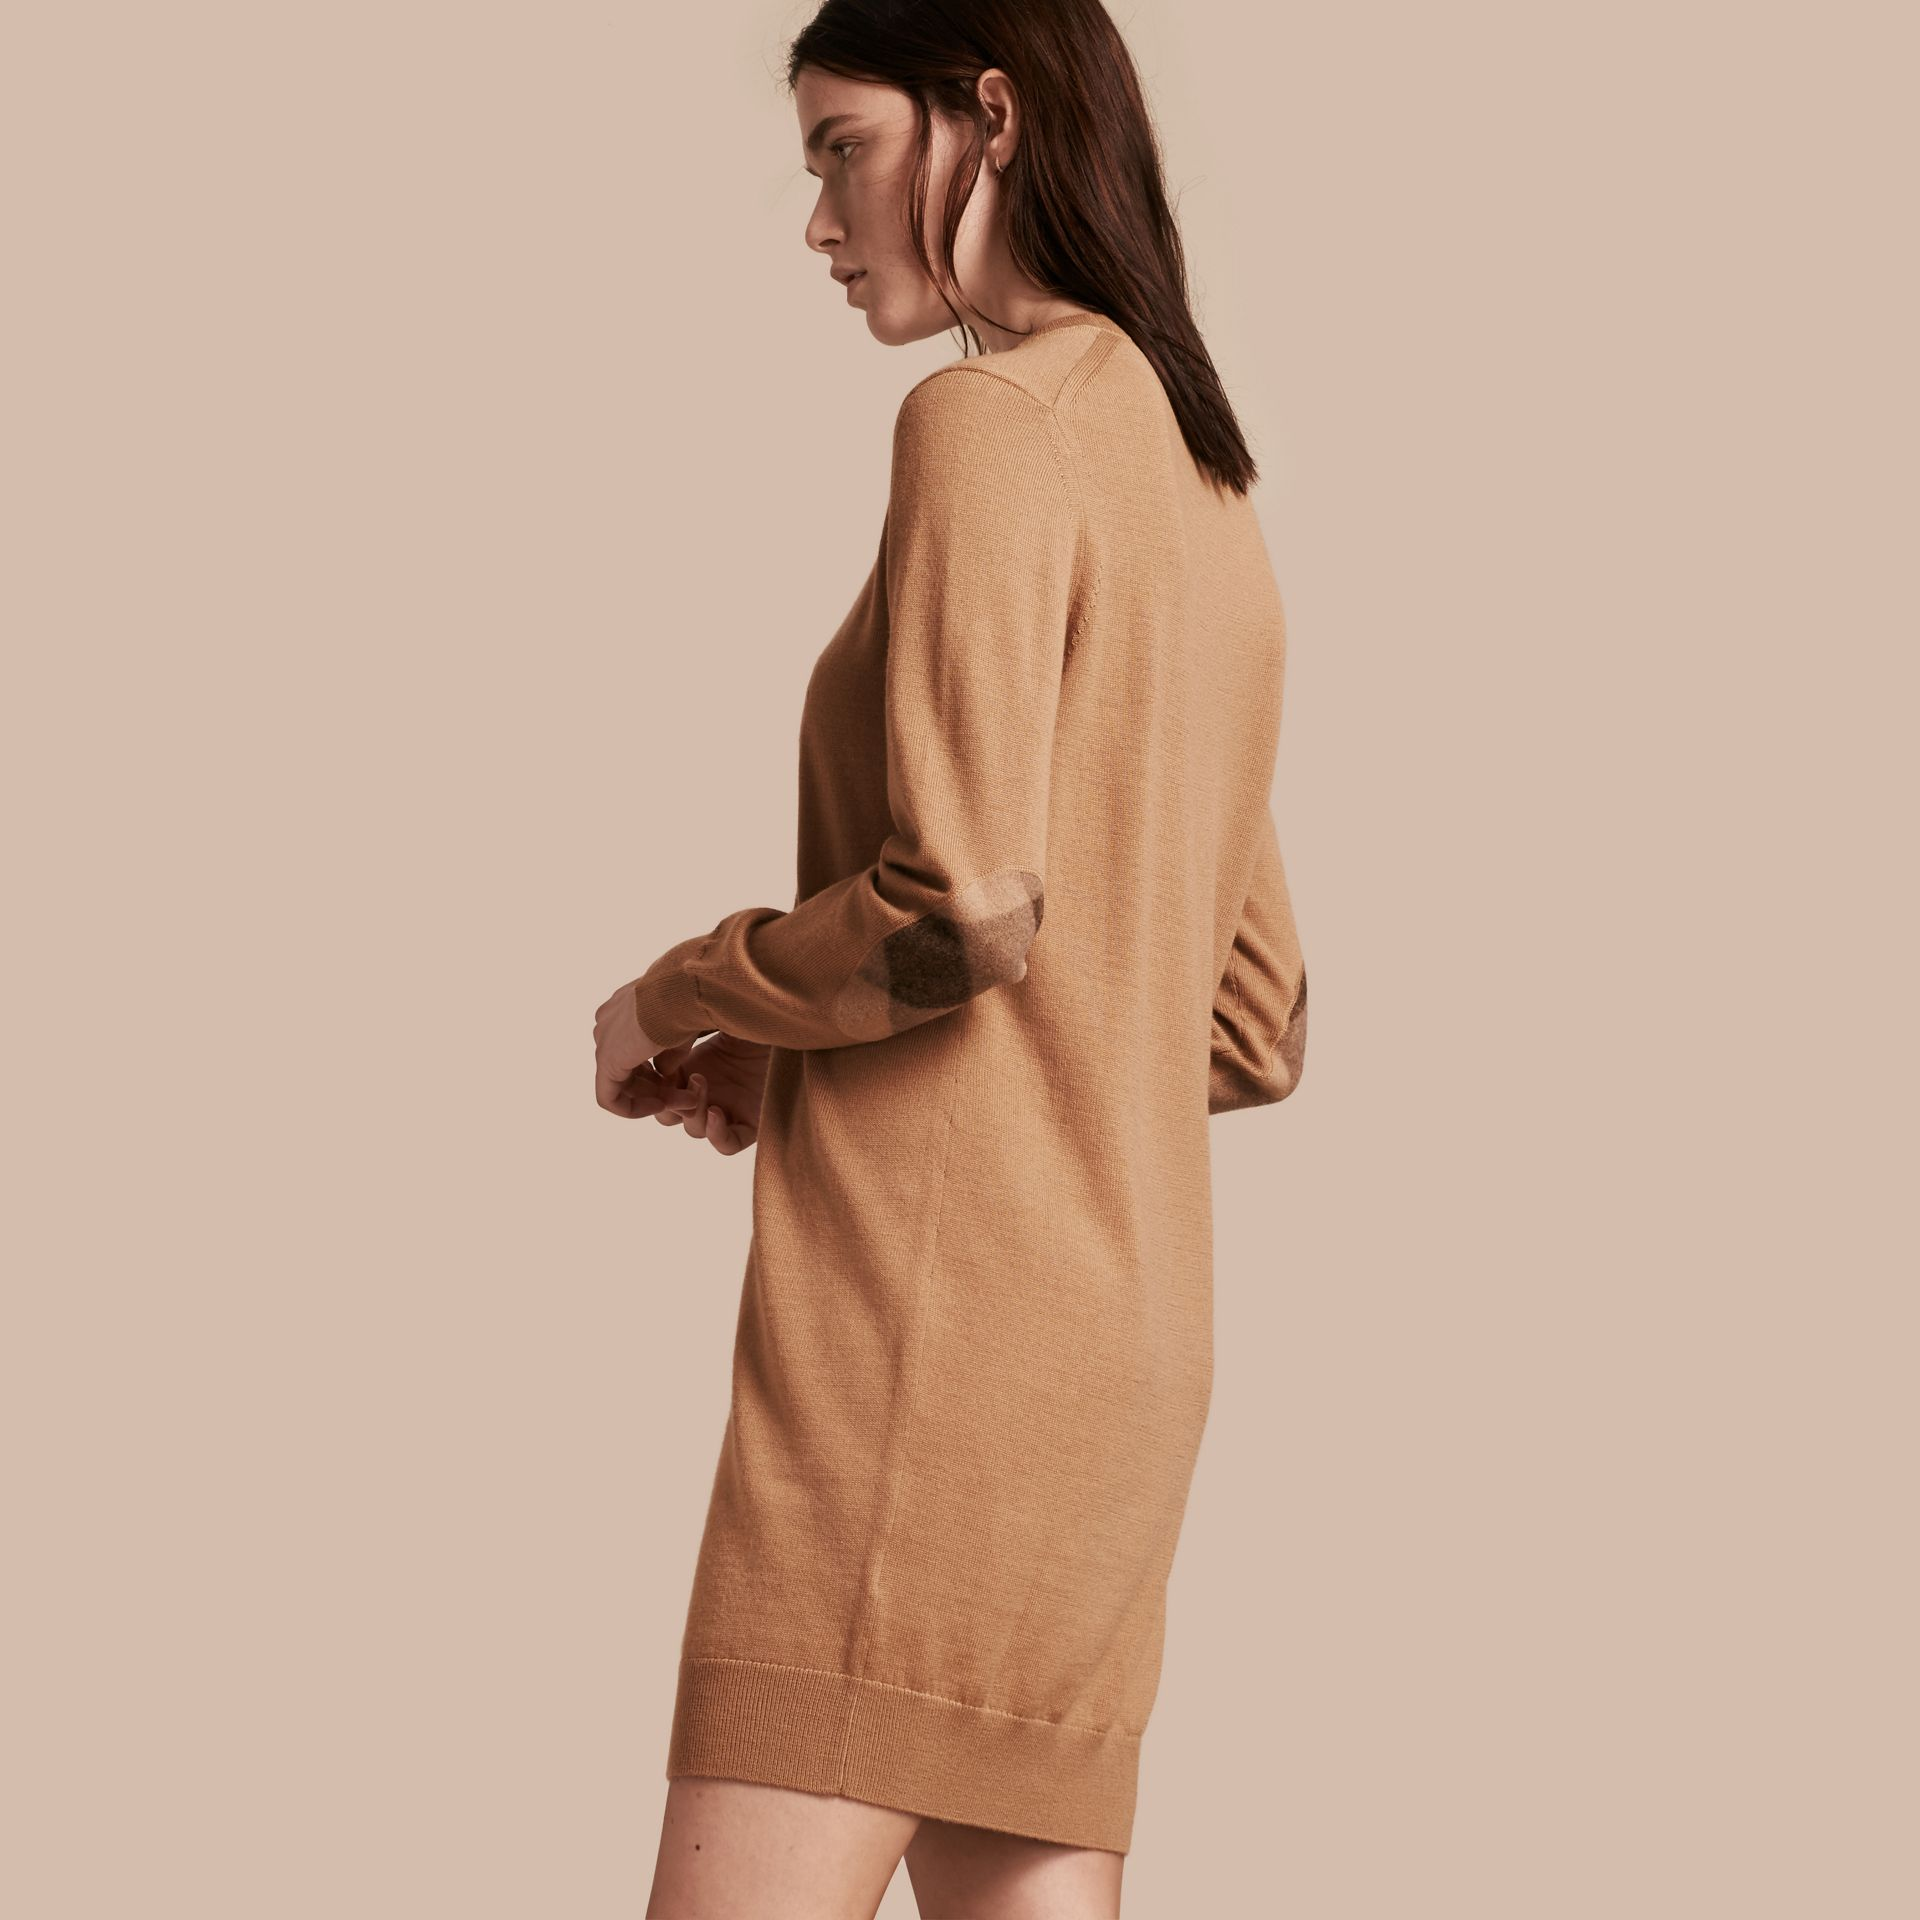 Camel Check Elbow Detail Merino Wool Sweater Dress Camel - gallery image 1